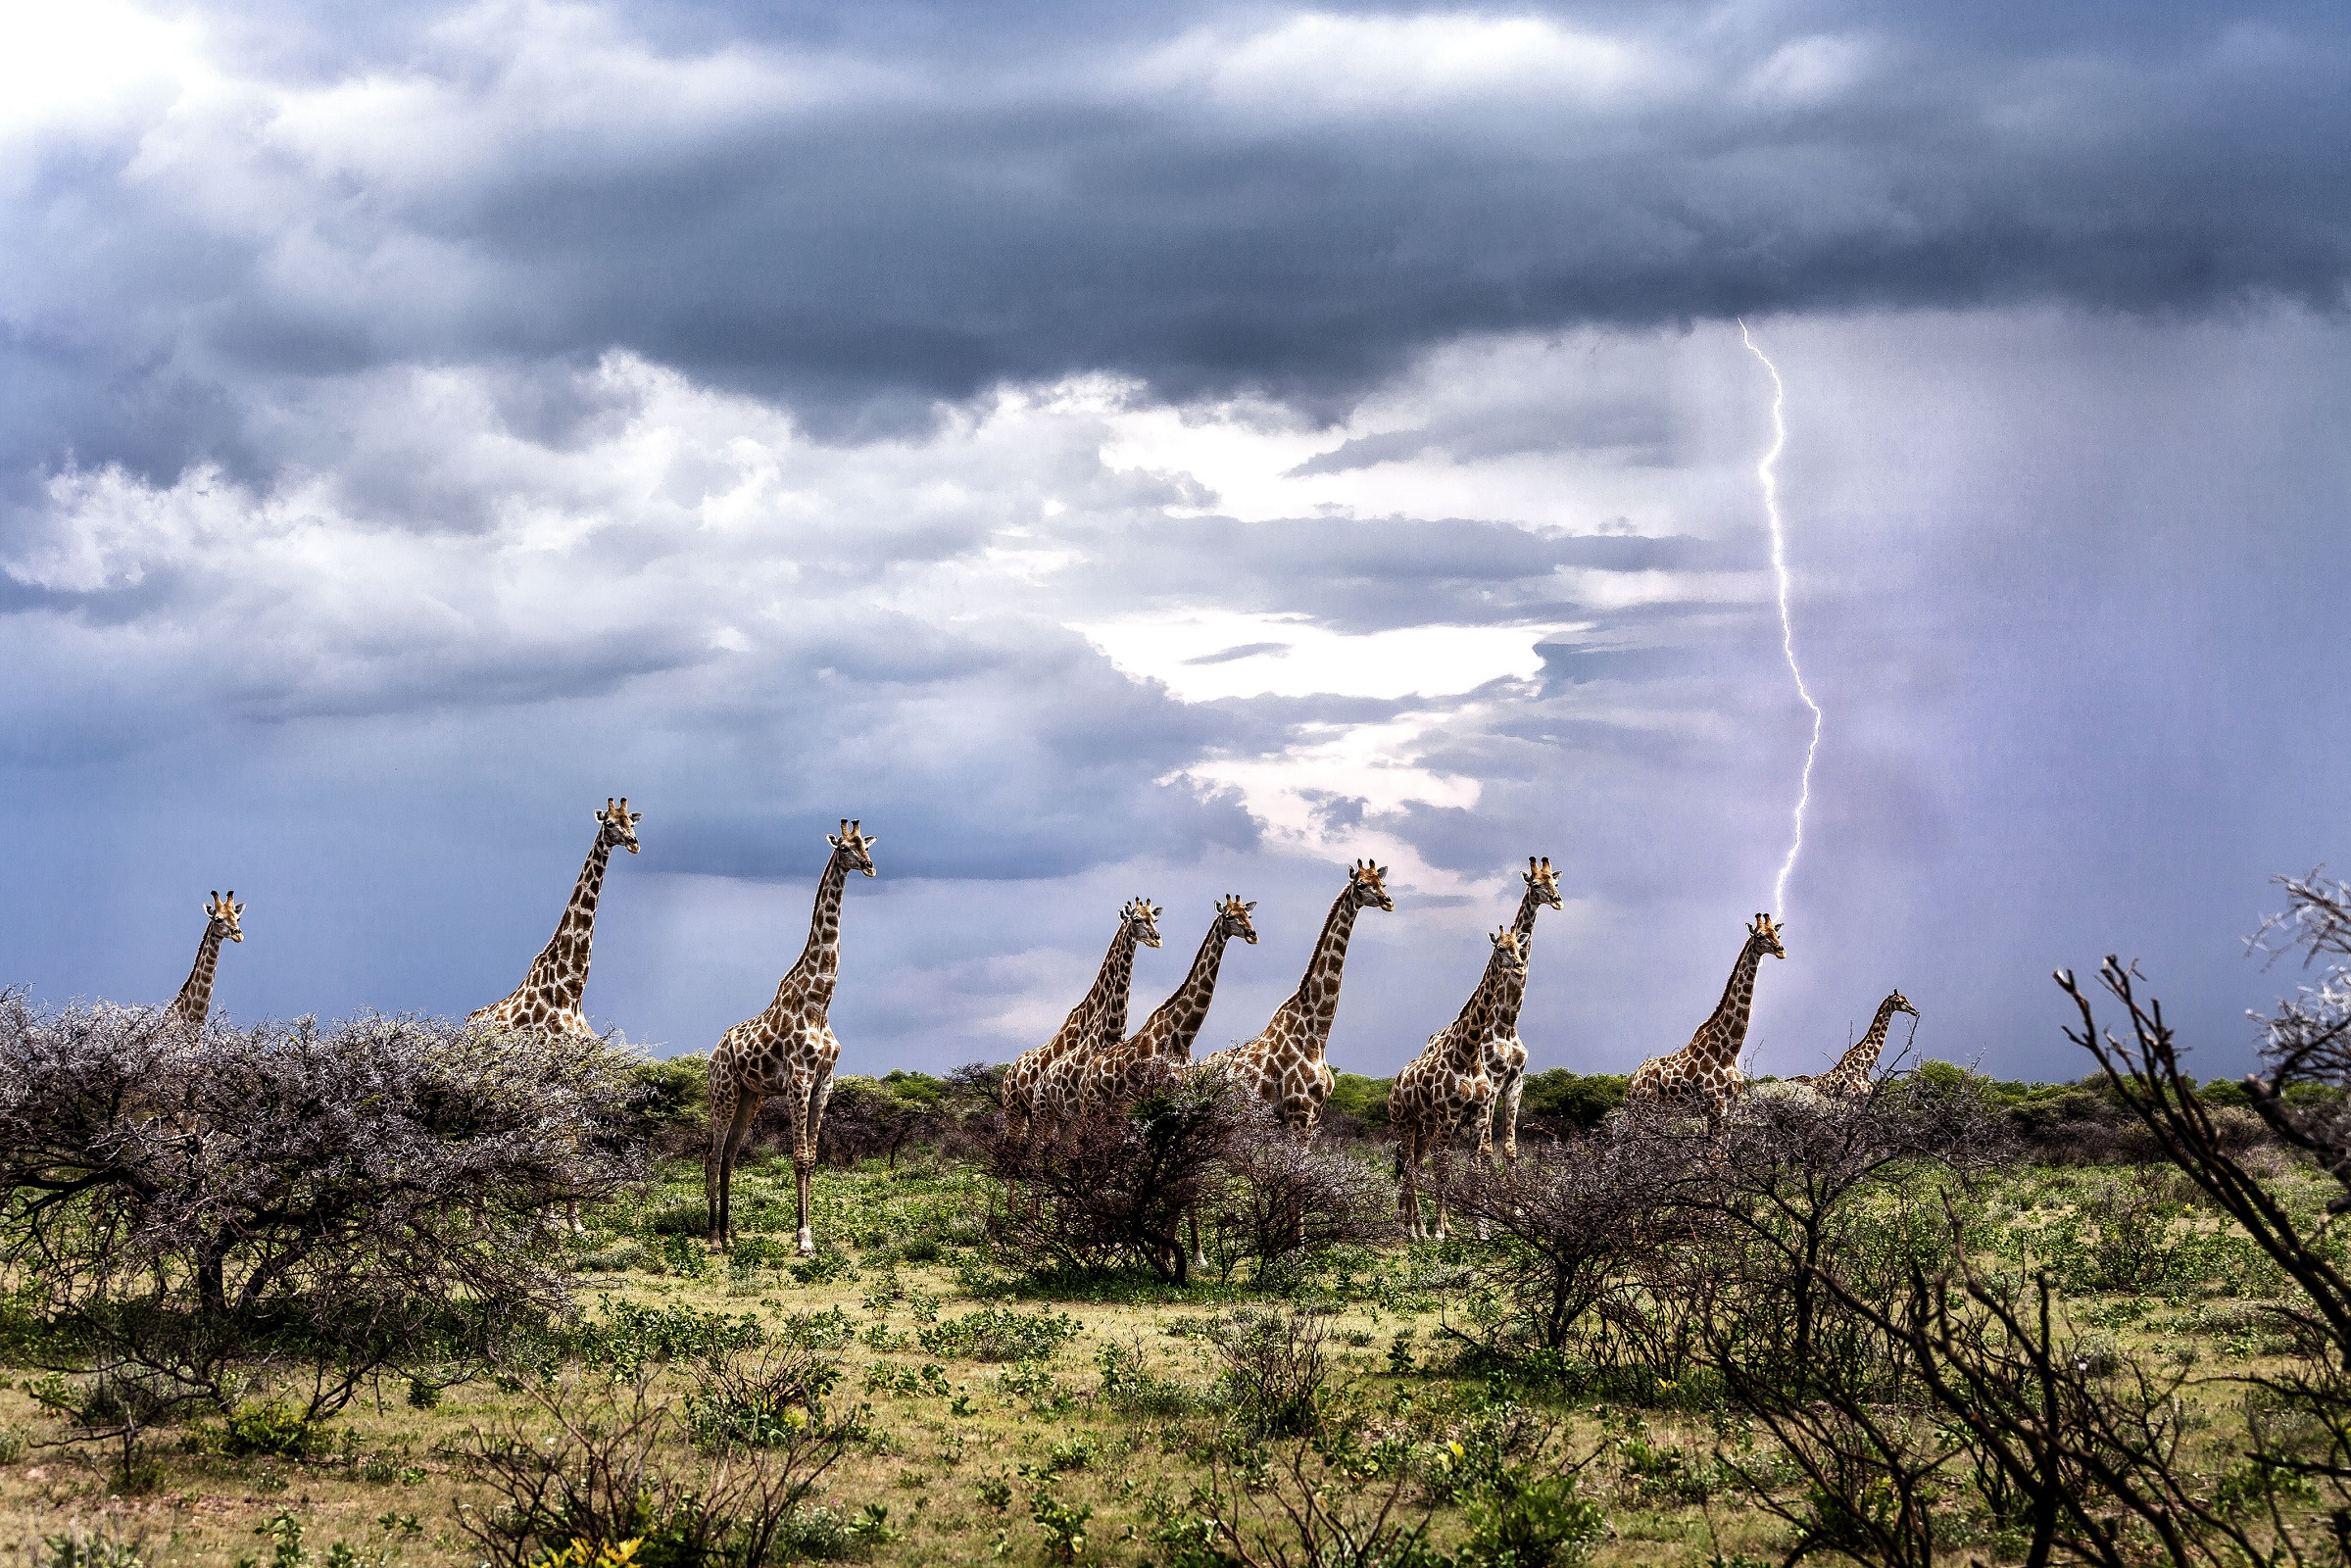 lucky escape for giraffe who narrowly missed being struck by lightning